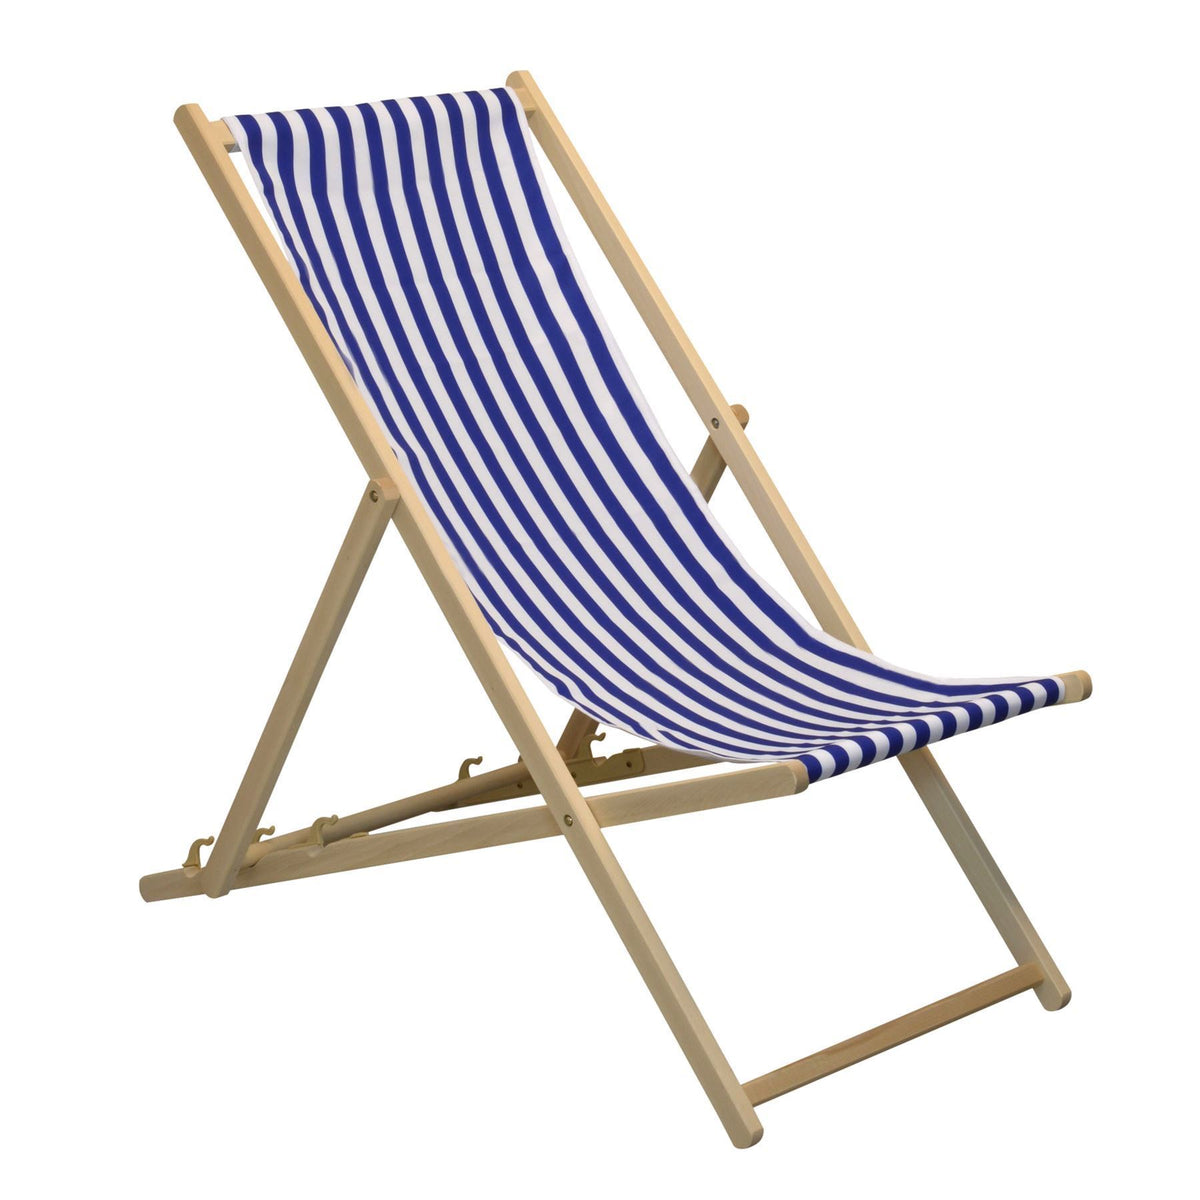 ideal for your garden - the Harbour Housewares Beach Deck Chair  - Blue/White Stripes